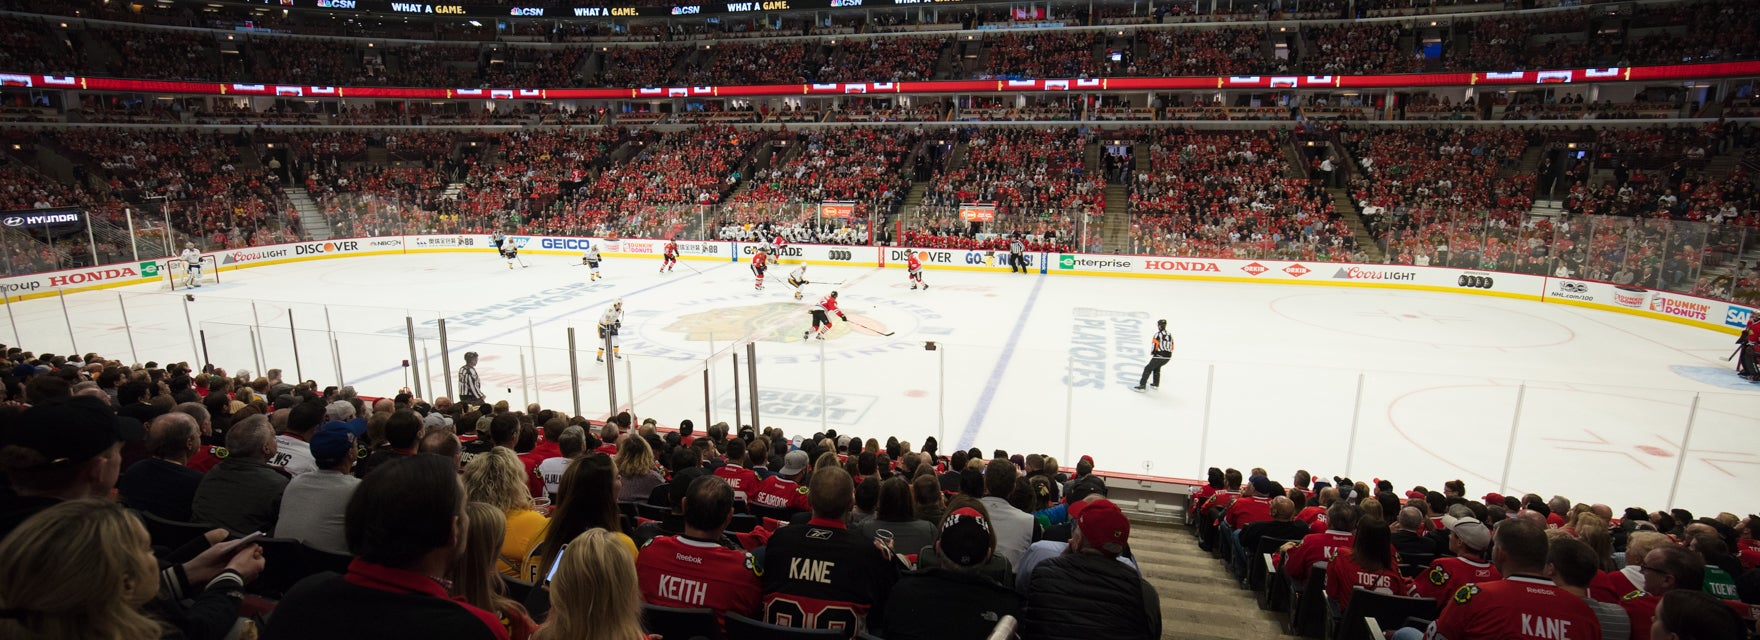 Seat view from Platinum Glass